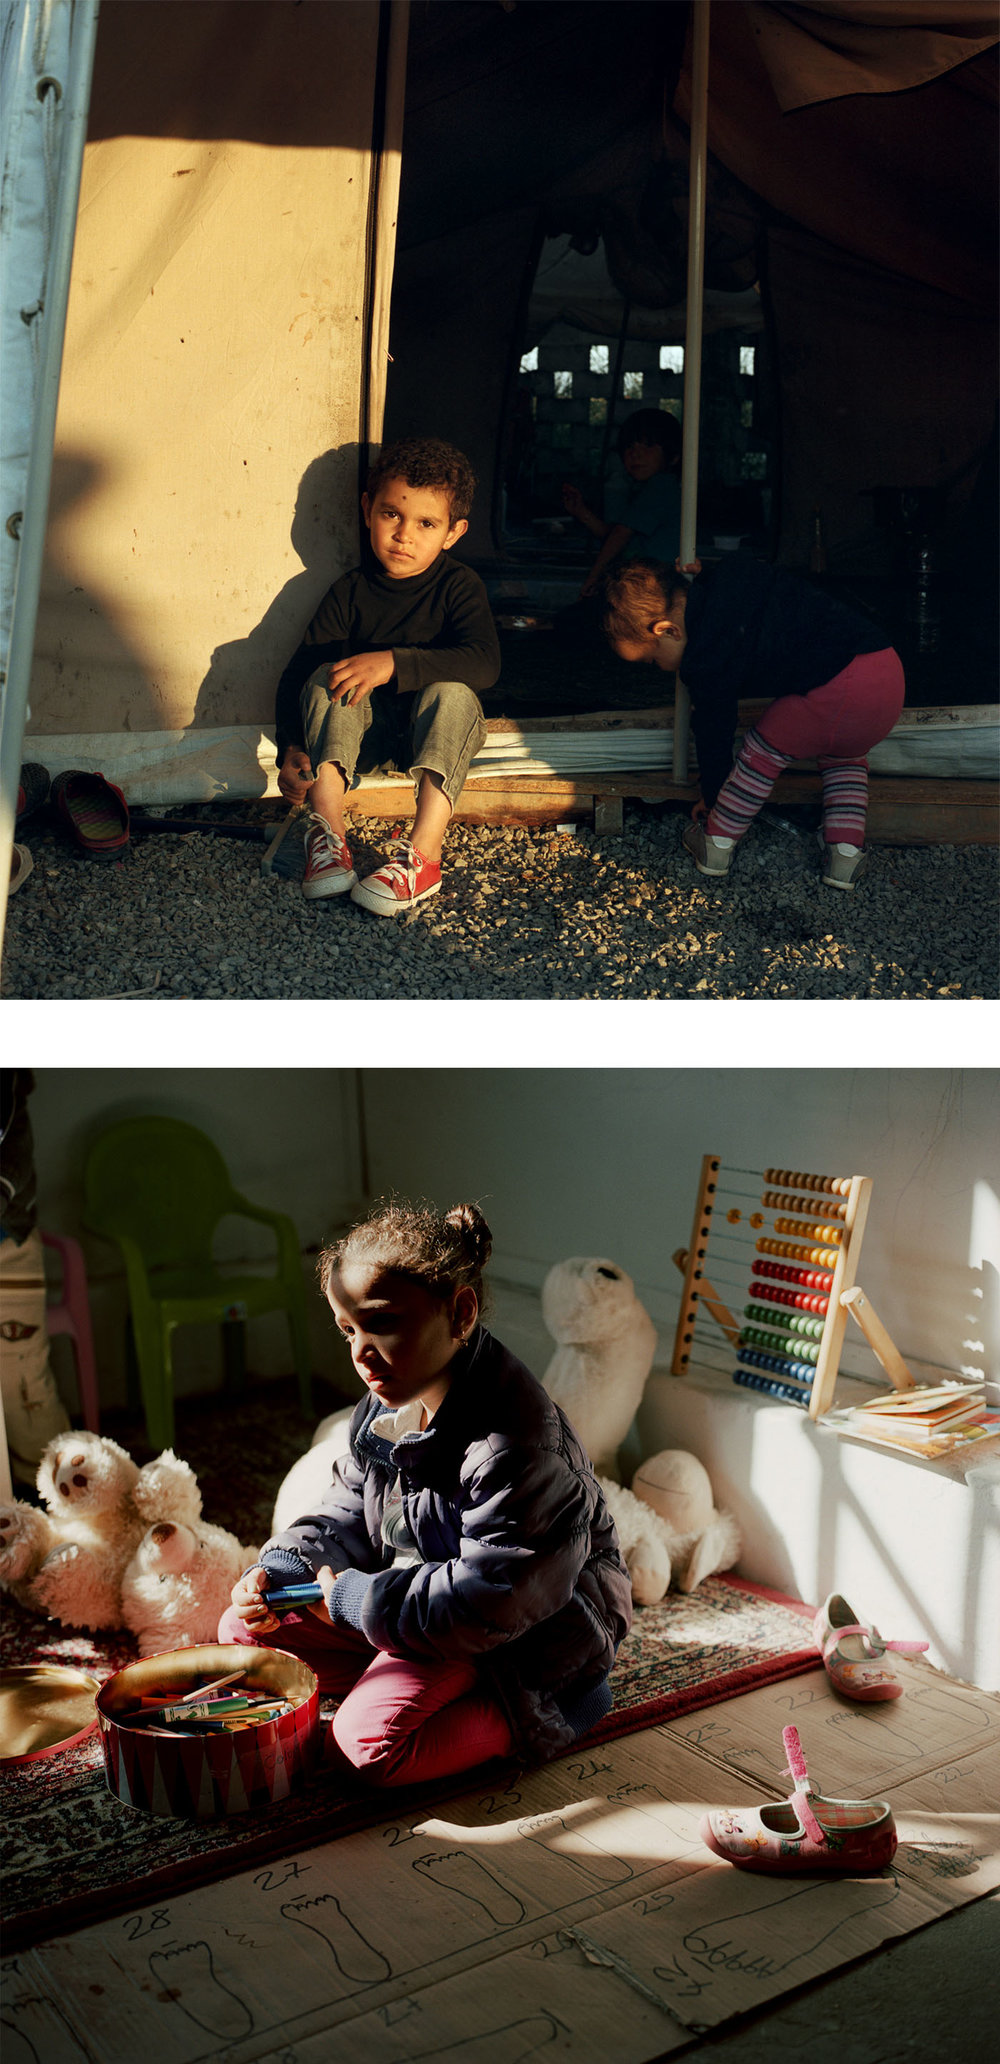 _The New Yorker A Syrian Refugee Camp, Greece